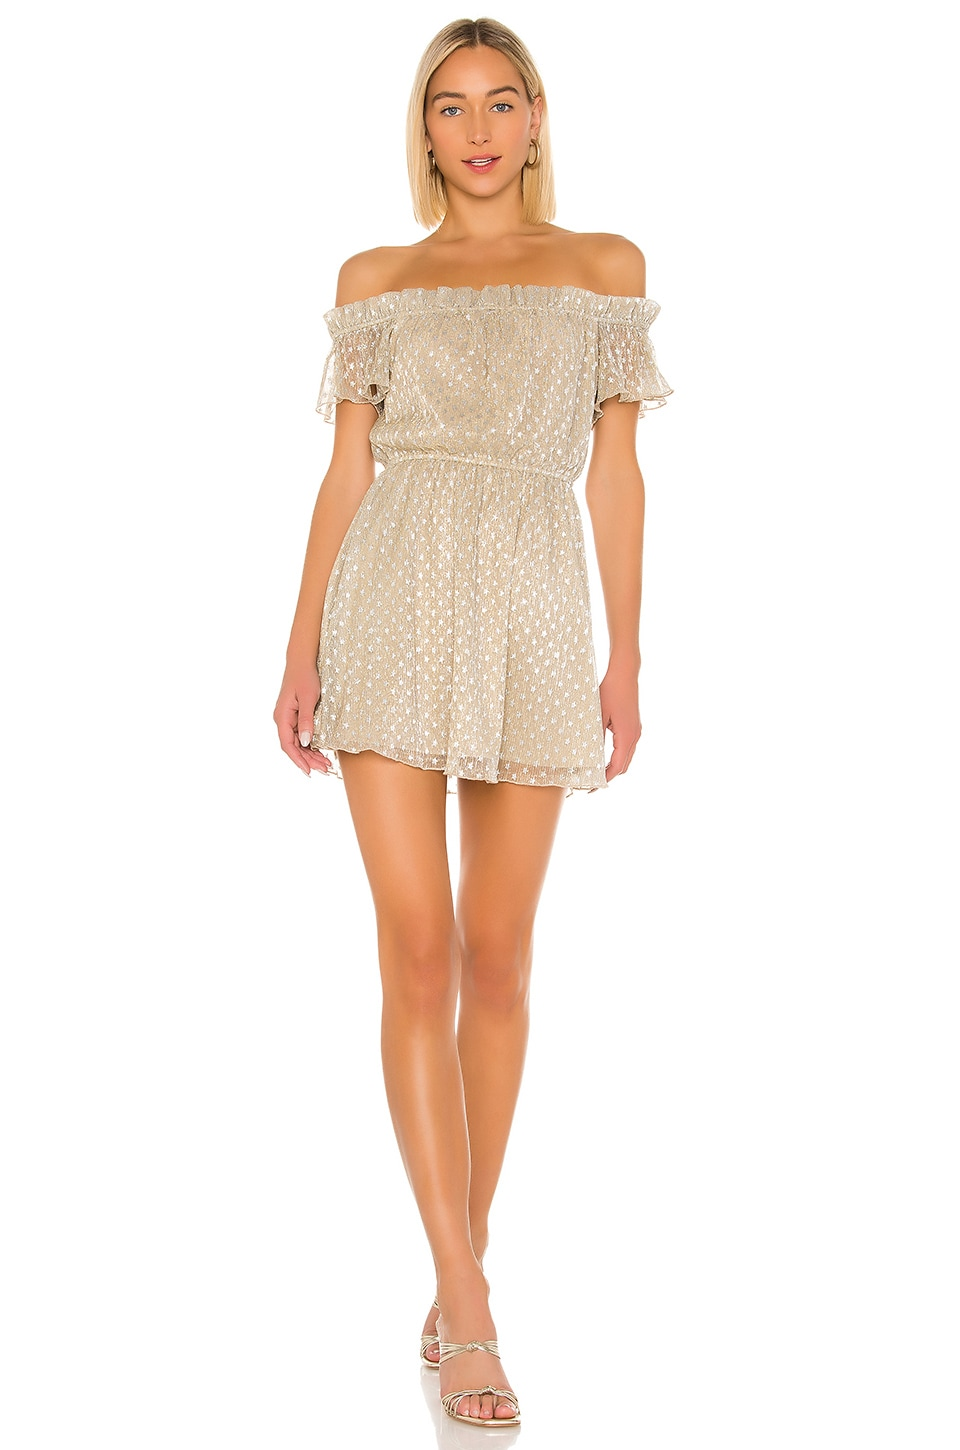 House of Harlow 1960 x REVOLVE Amoli Dress in Metallic Star